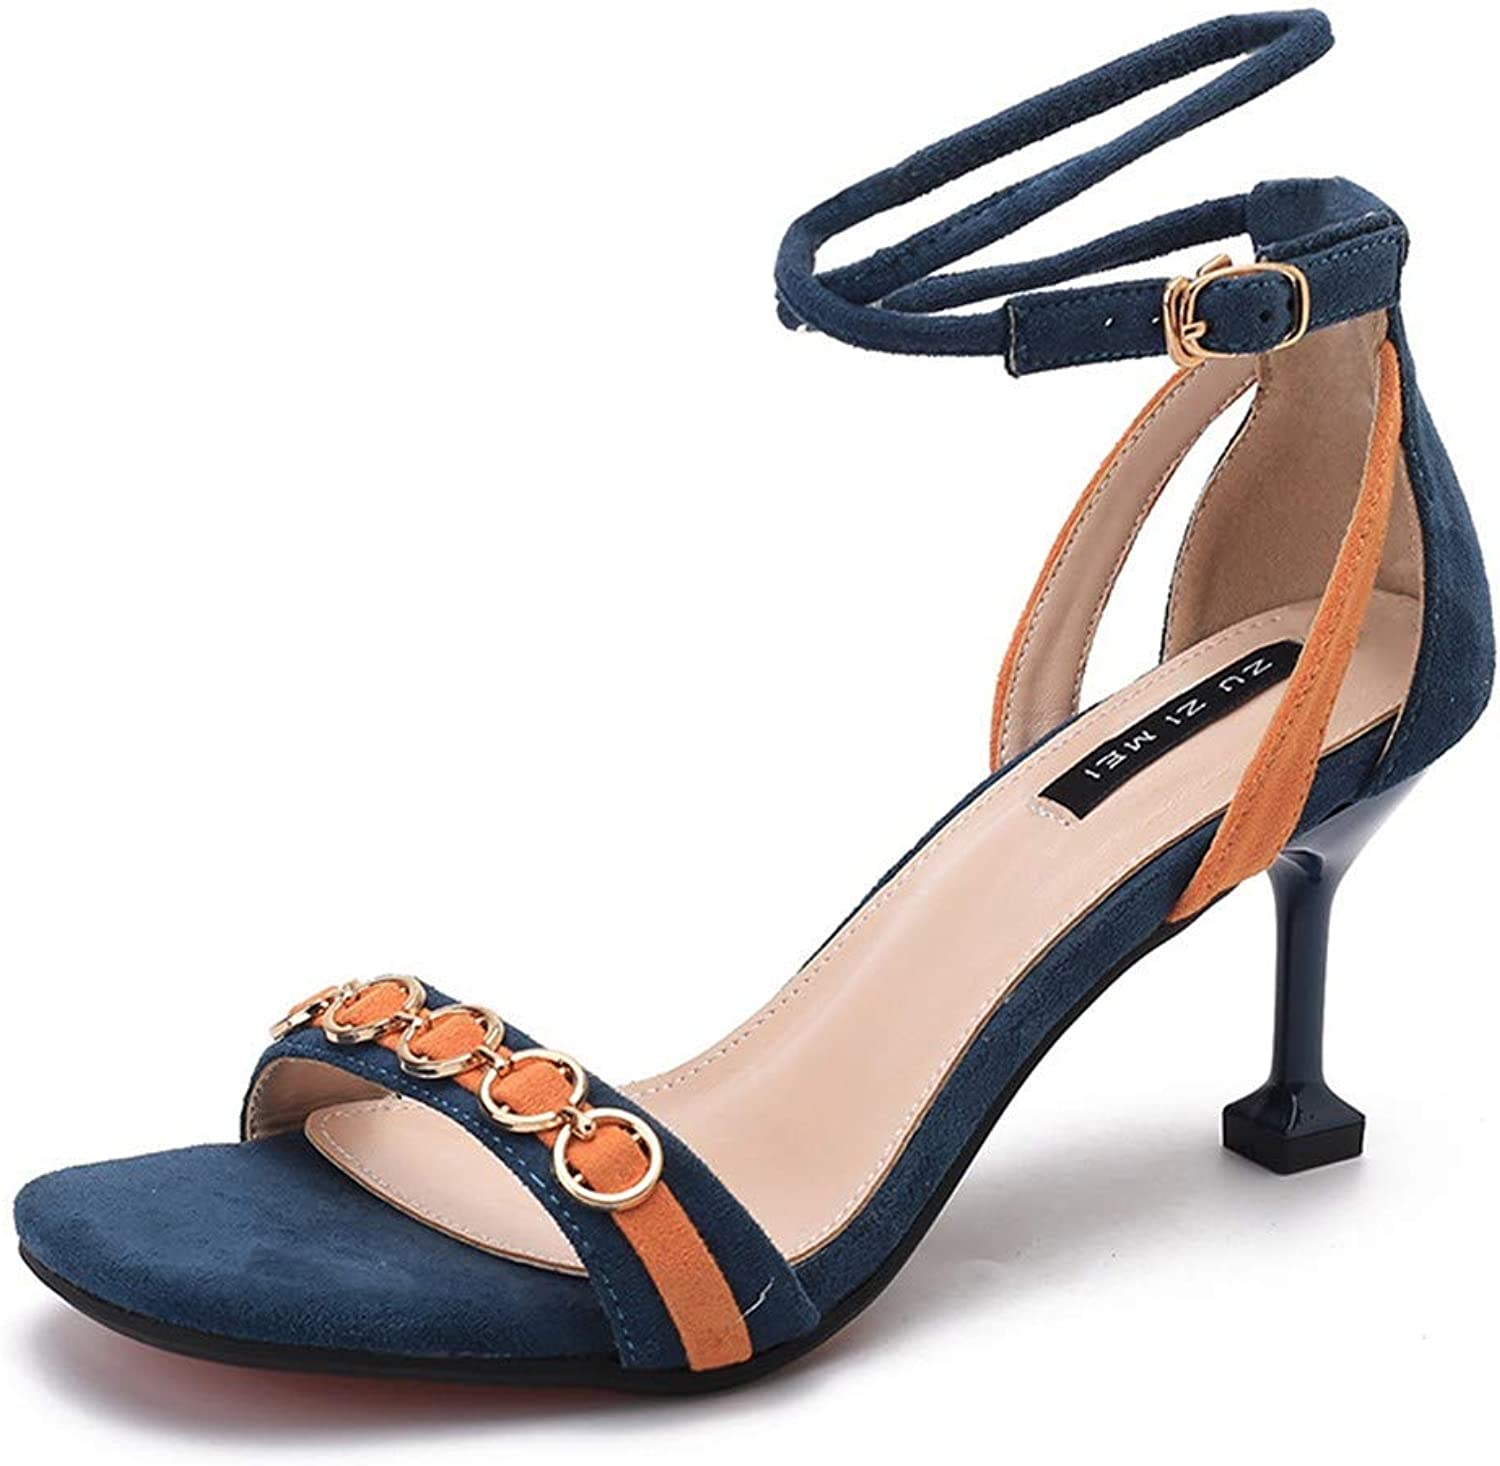 Top Shishang bluee Open Toe cat with Sandals Female Summer New Word Buckle high Heels